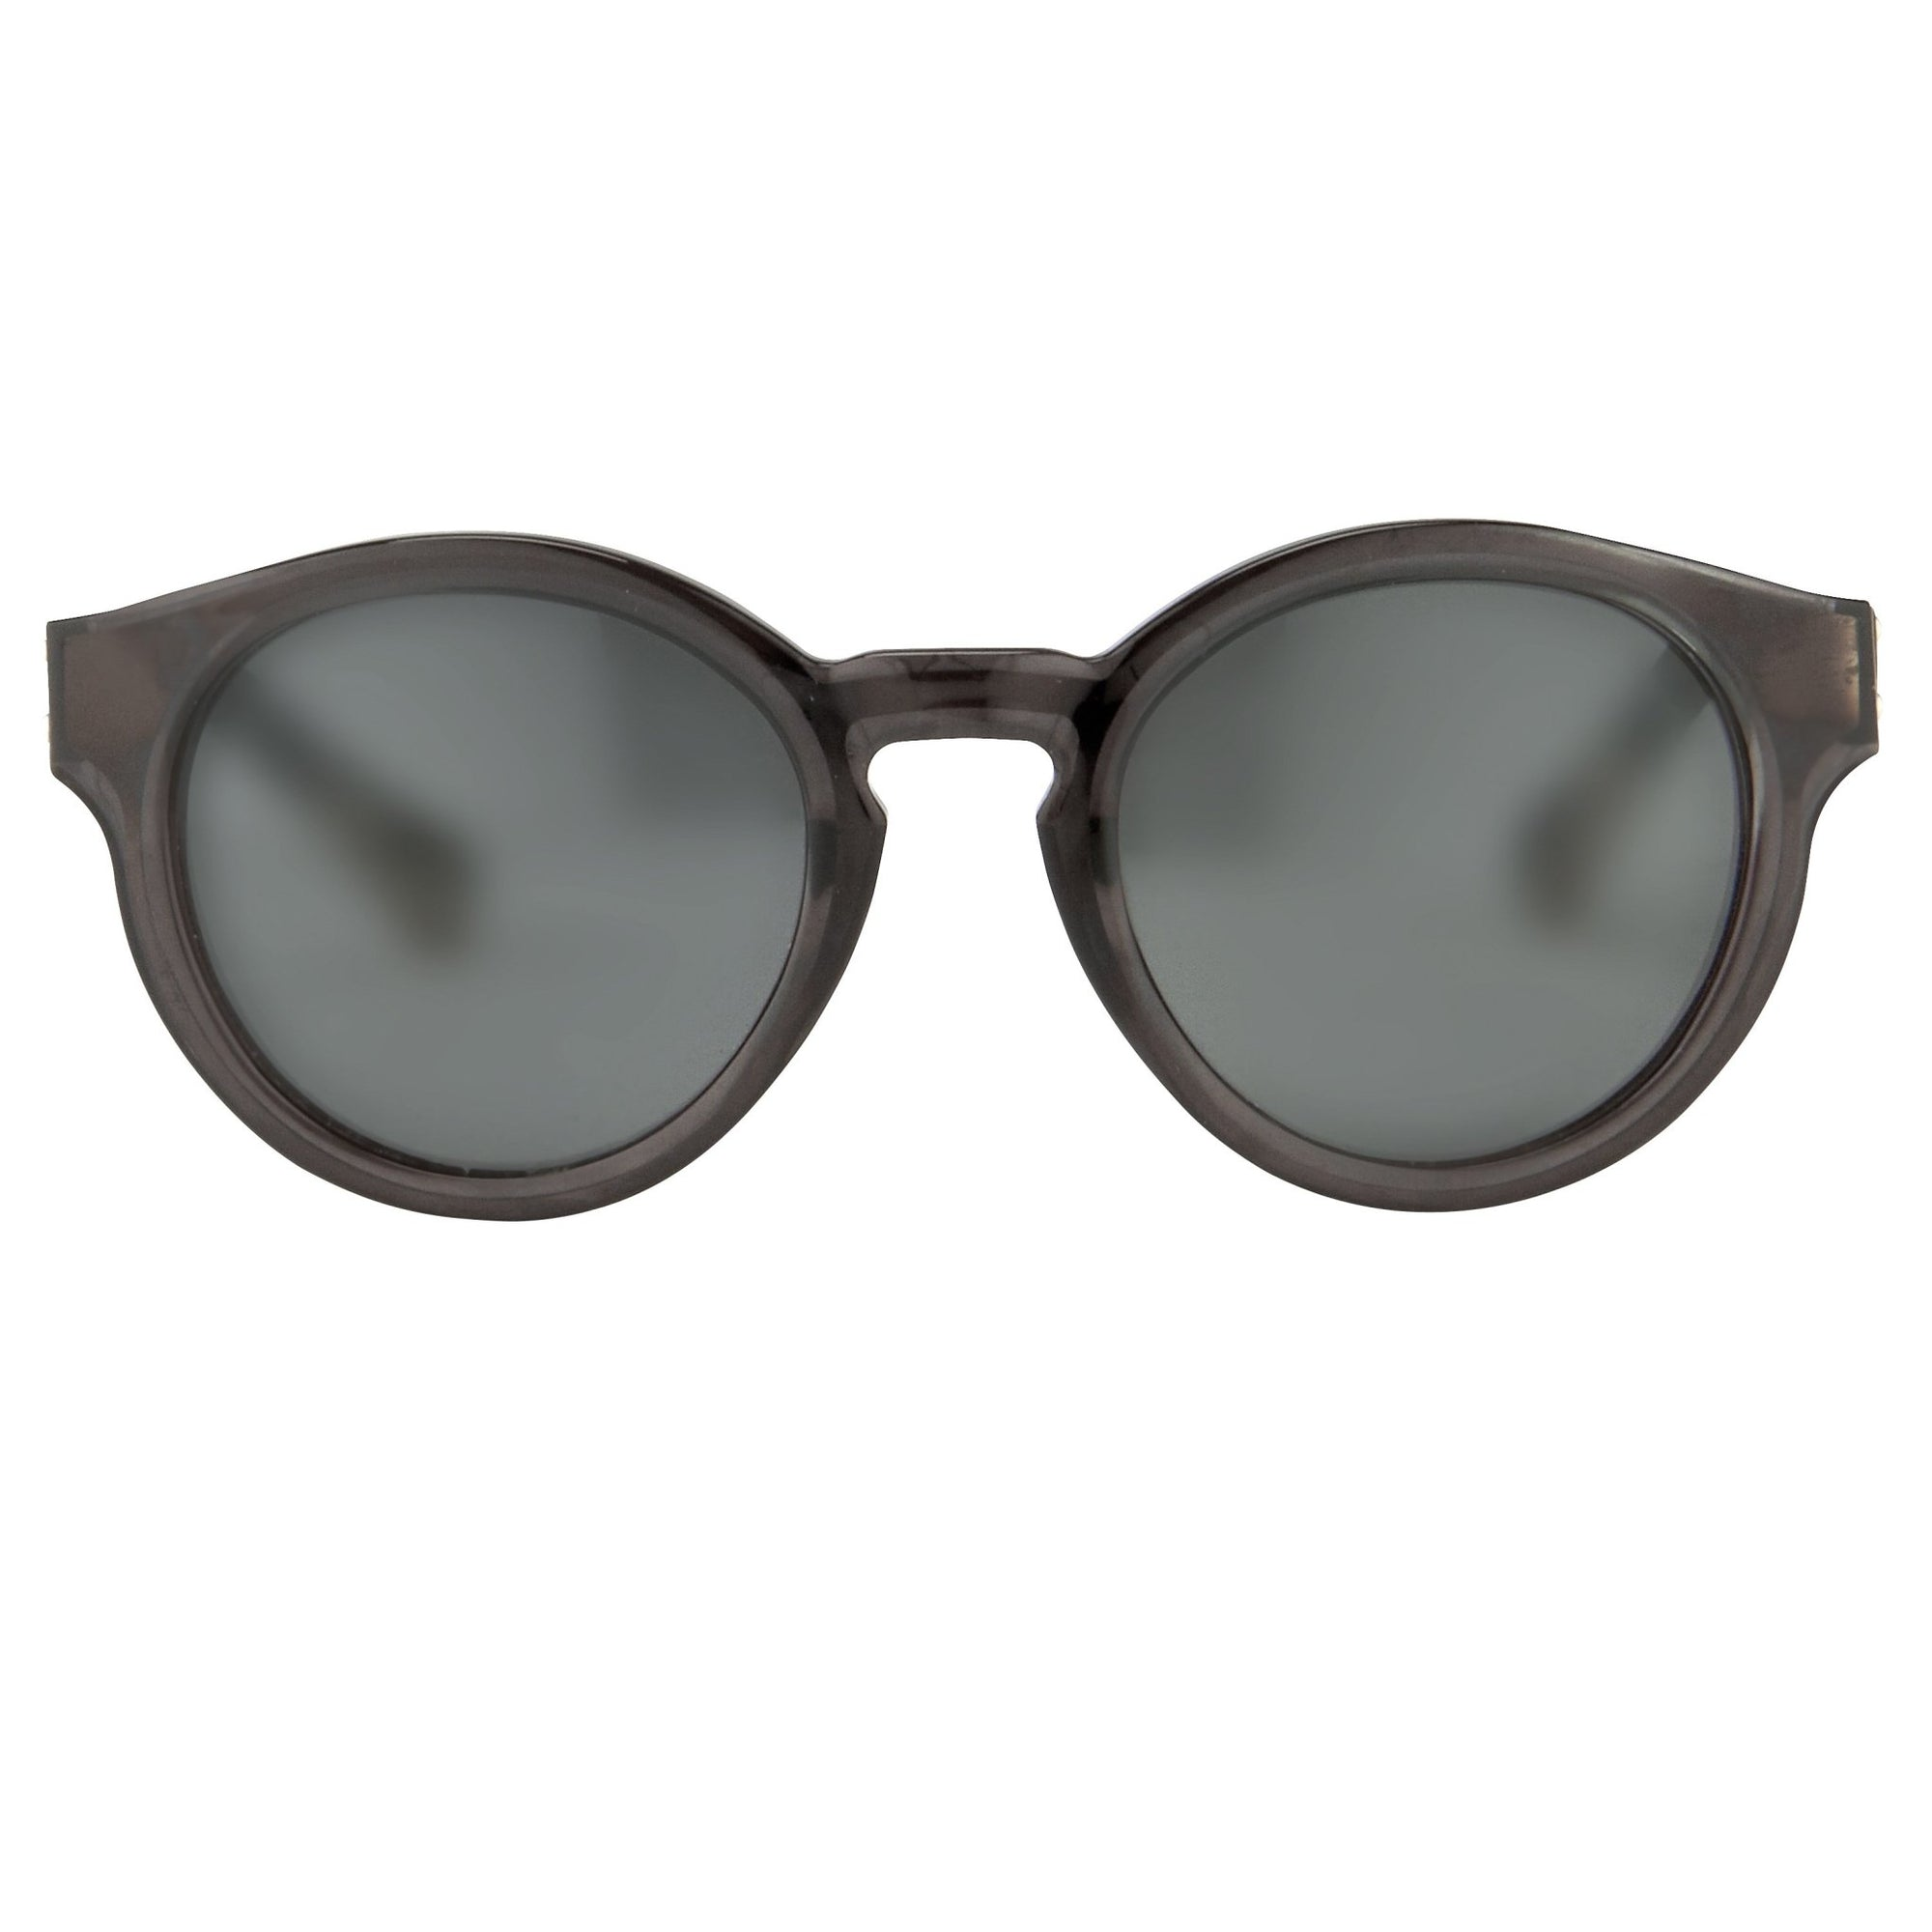 Kris Van Assche Unisex Sunglasses with Oval Translucent Black and Grey Lenses Category 3 - KVA7C6SUN - Watches & Crystals